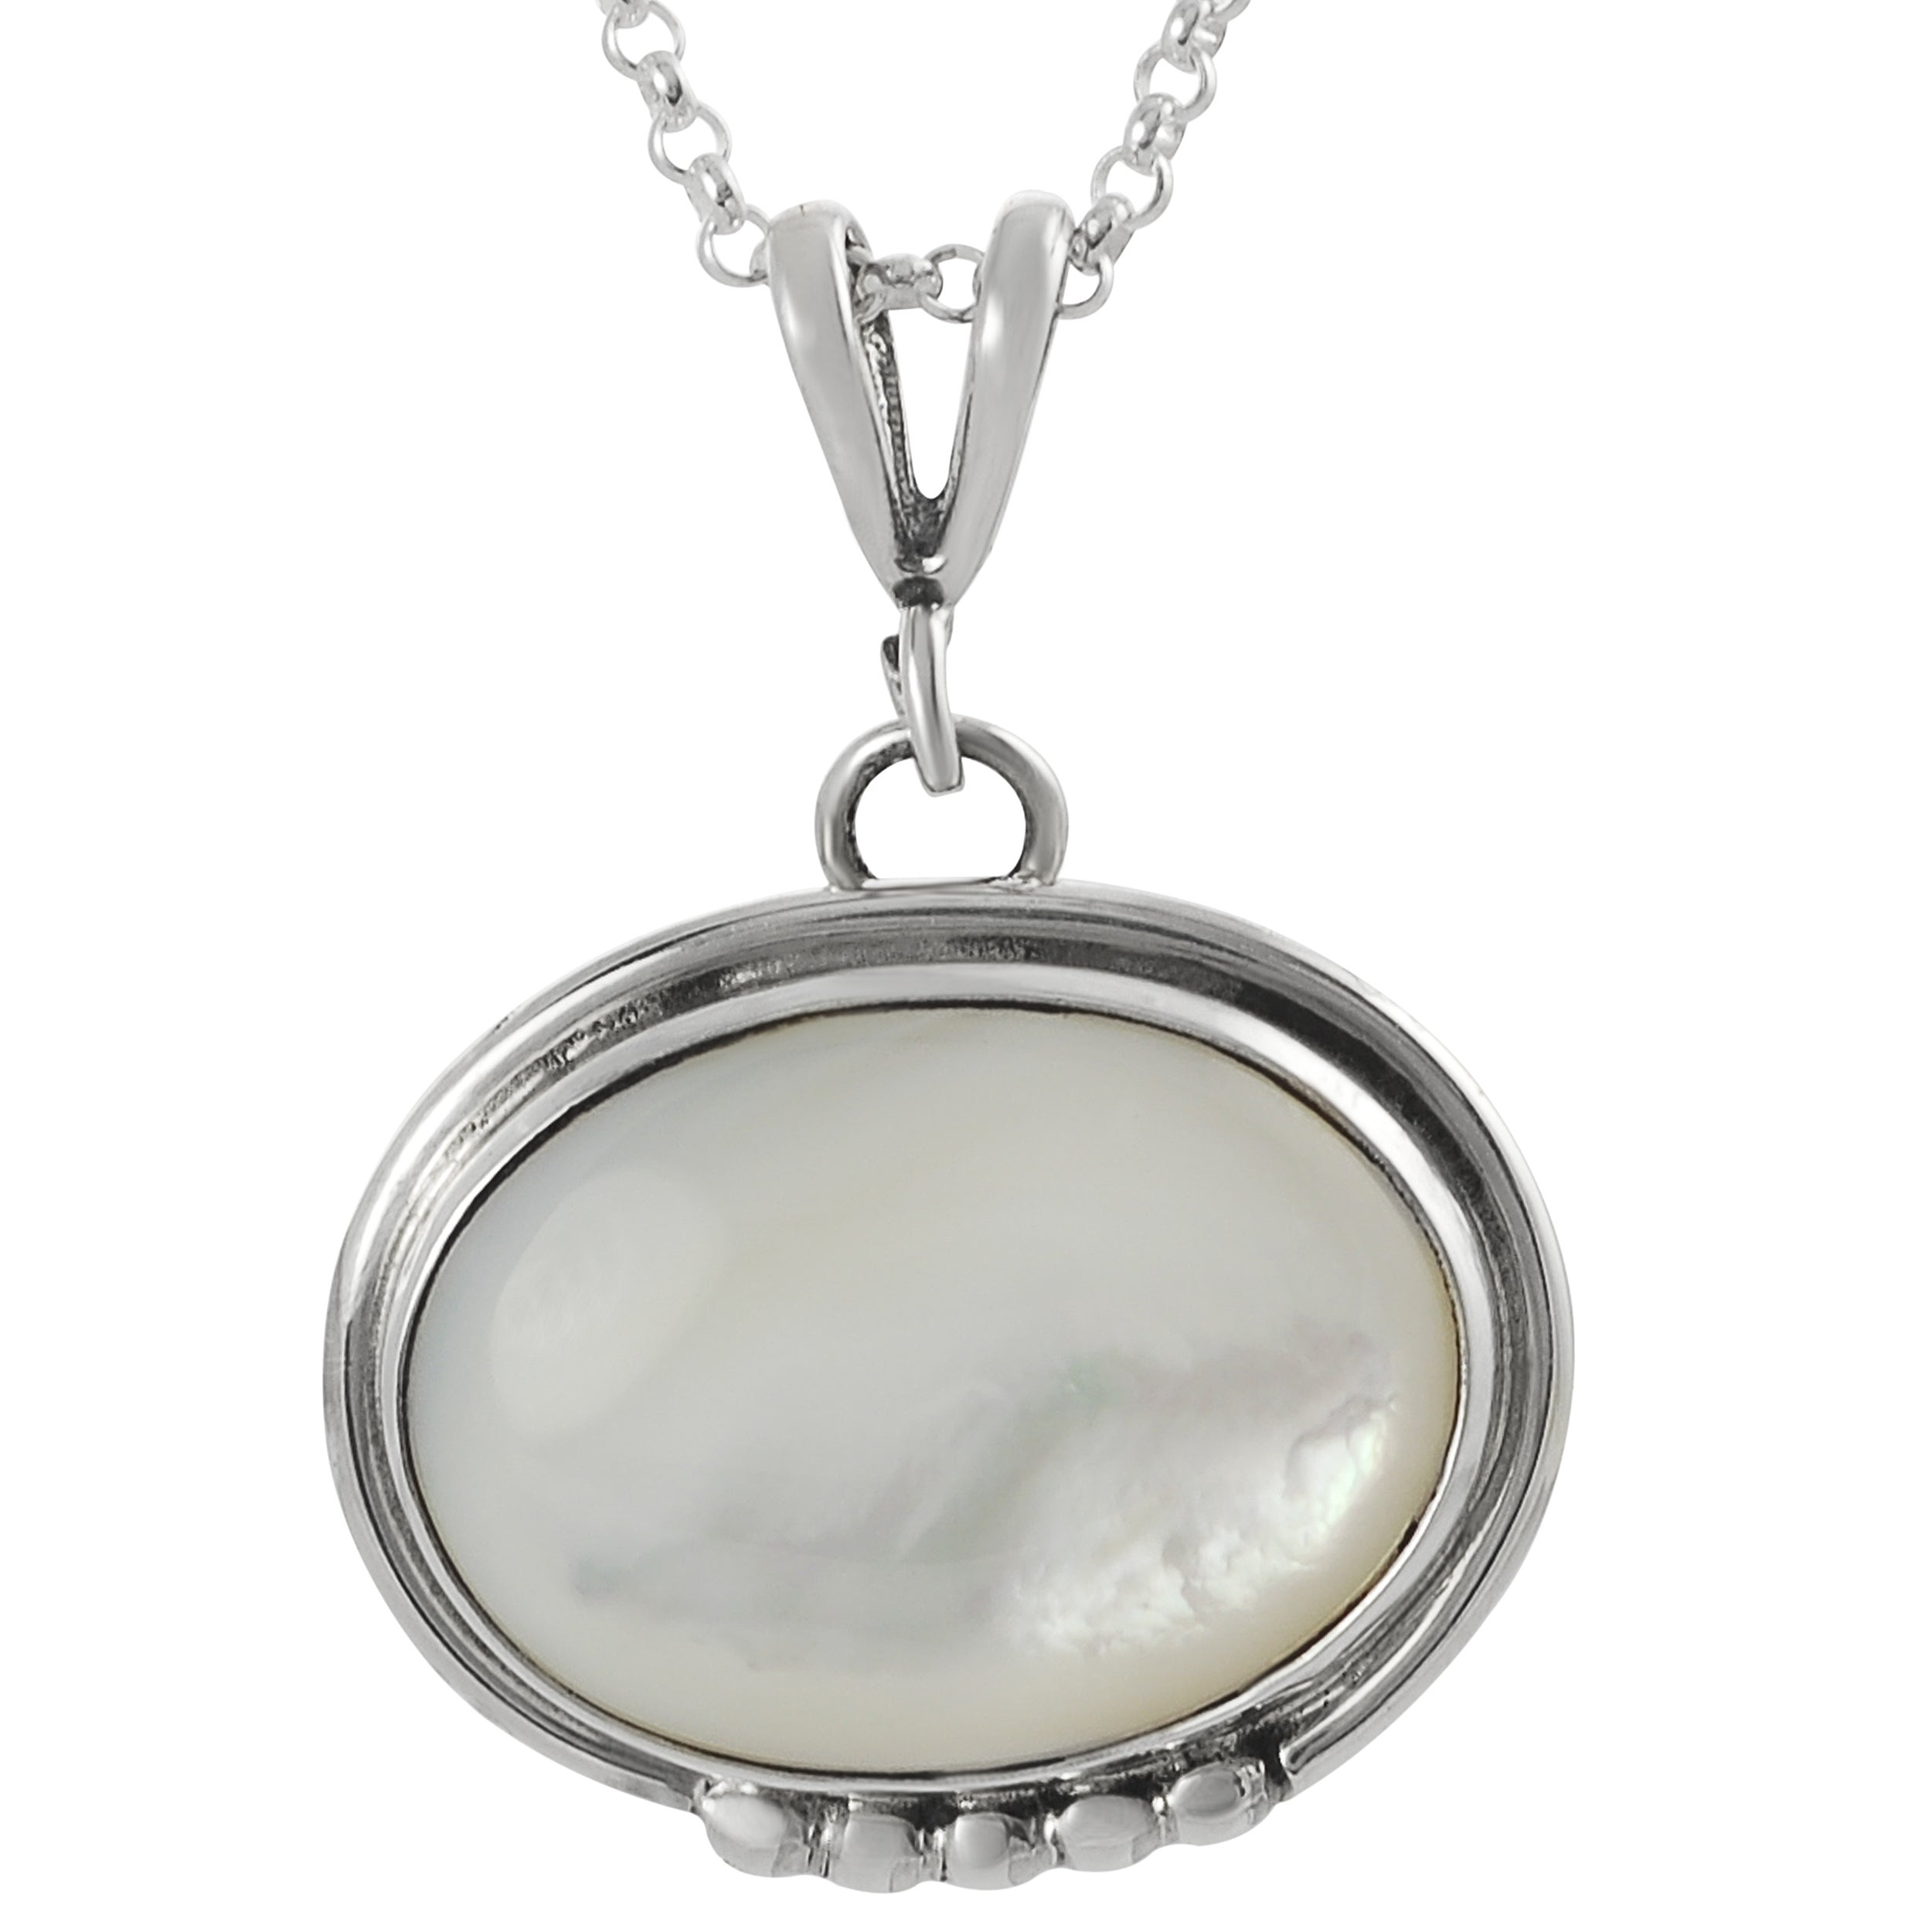 Journee Sterling Silver and White Genuine Moonstone Pendant Necklace